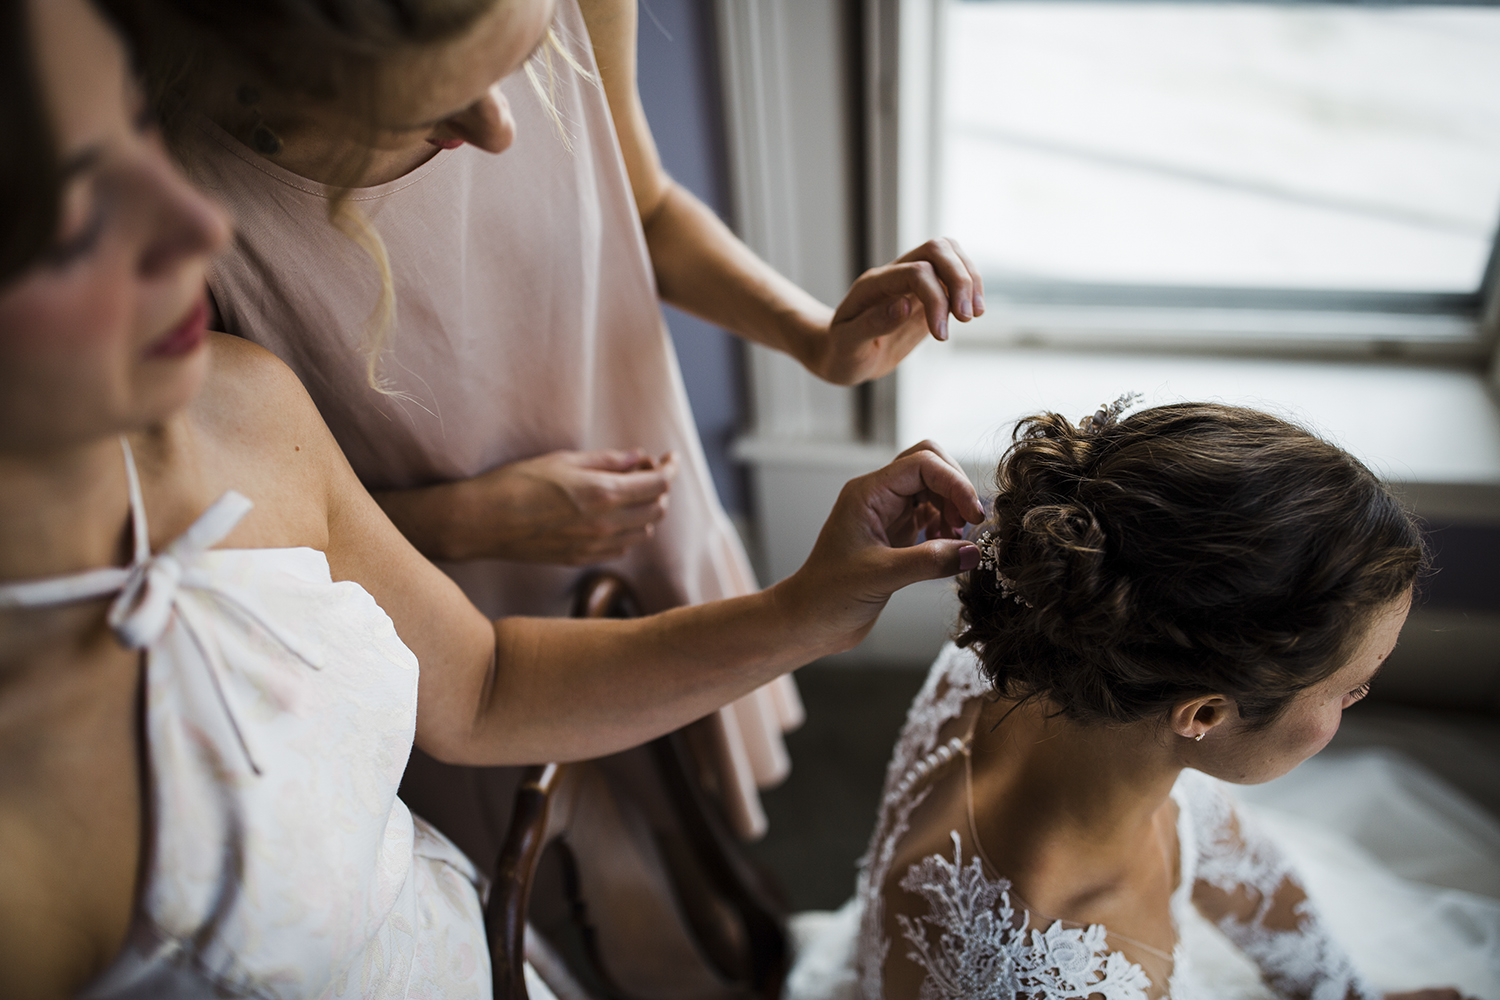 Isabelle's bridesmaids help put the finishing touches on her hair at the Virginia wedding venue the Joshua Wilton House in Harrisonburg